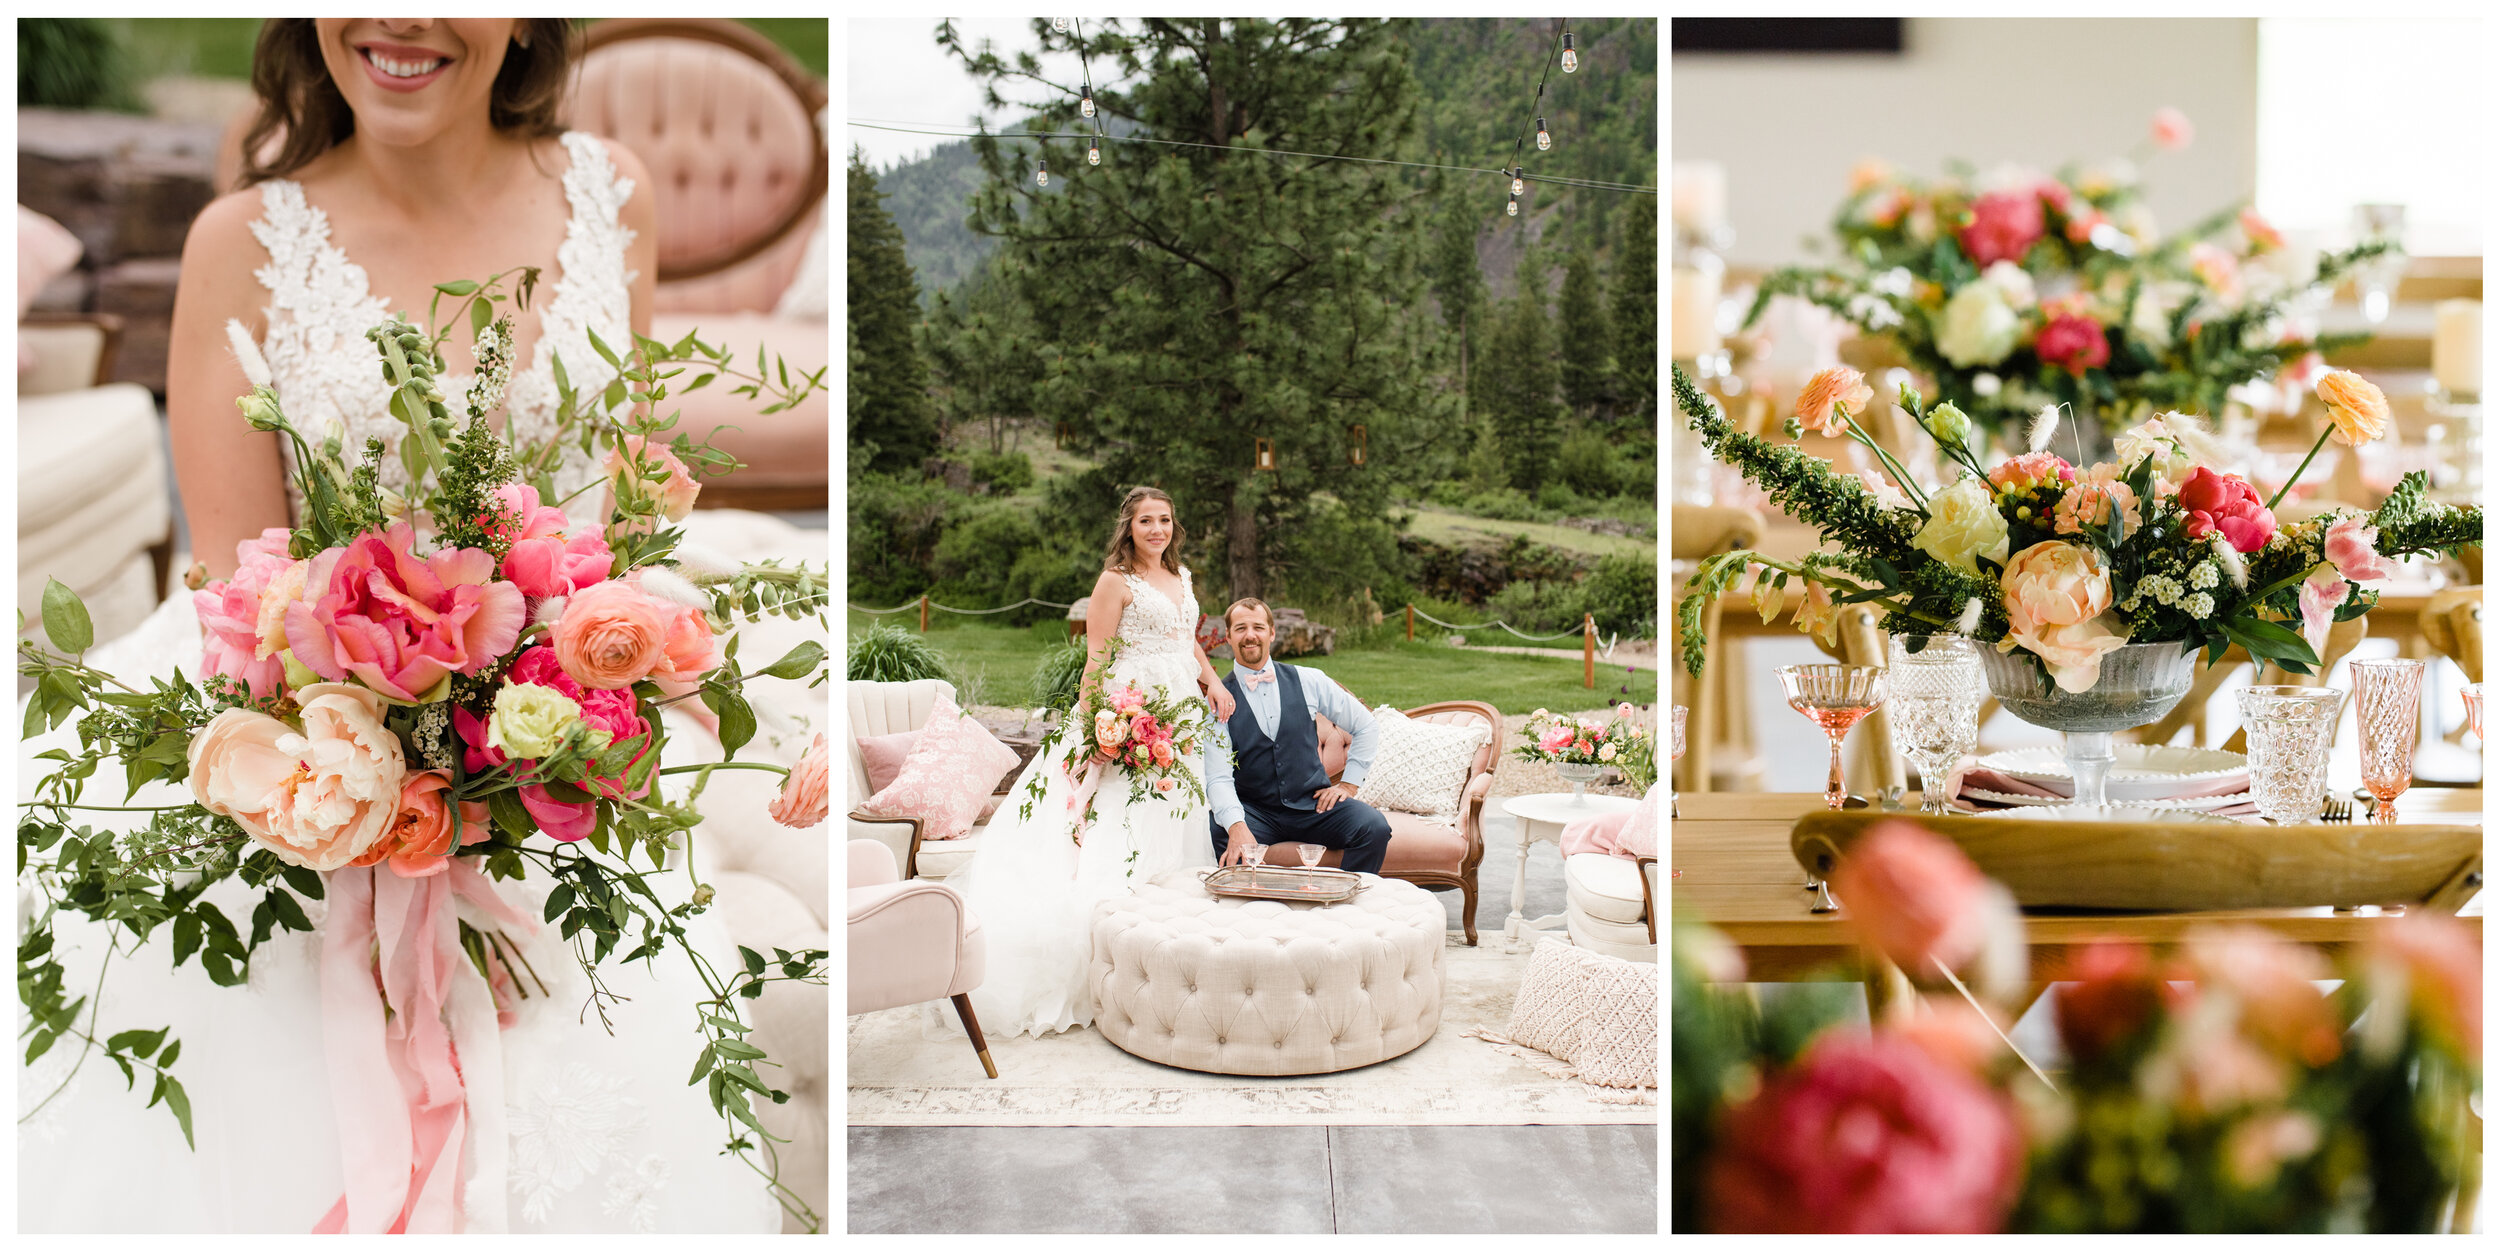 Coral Styled Shoot Composite 1.jpg